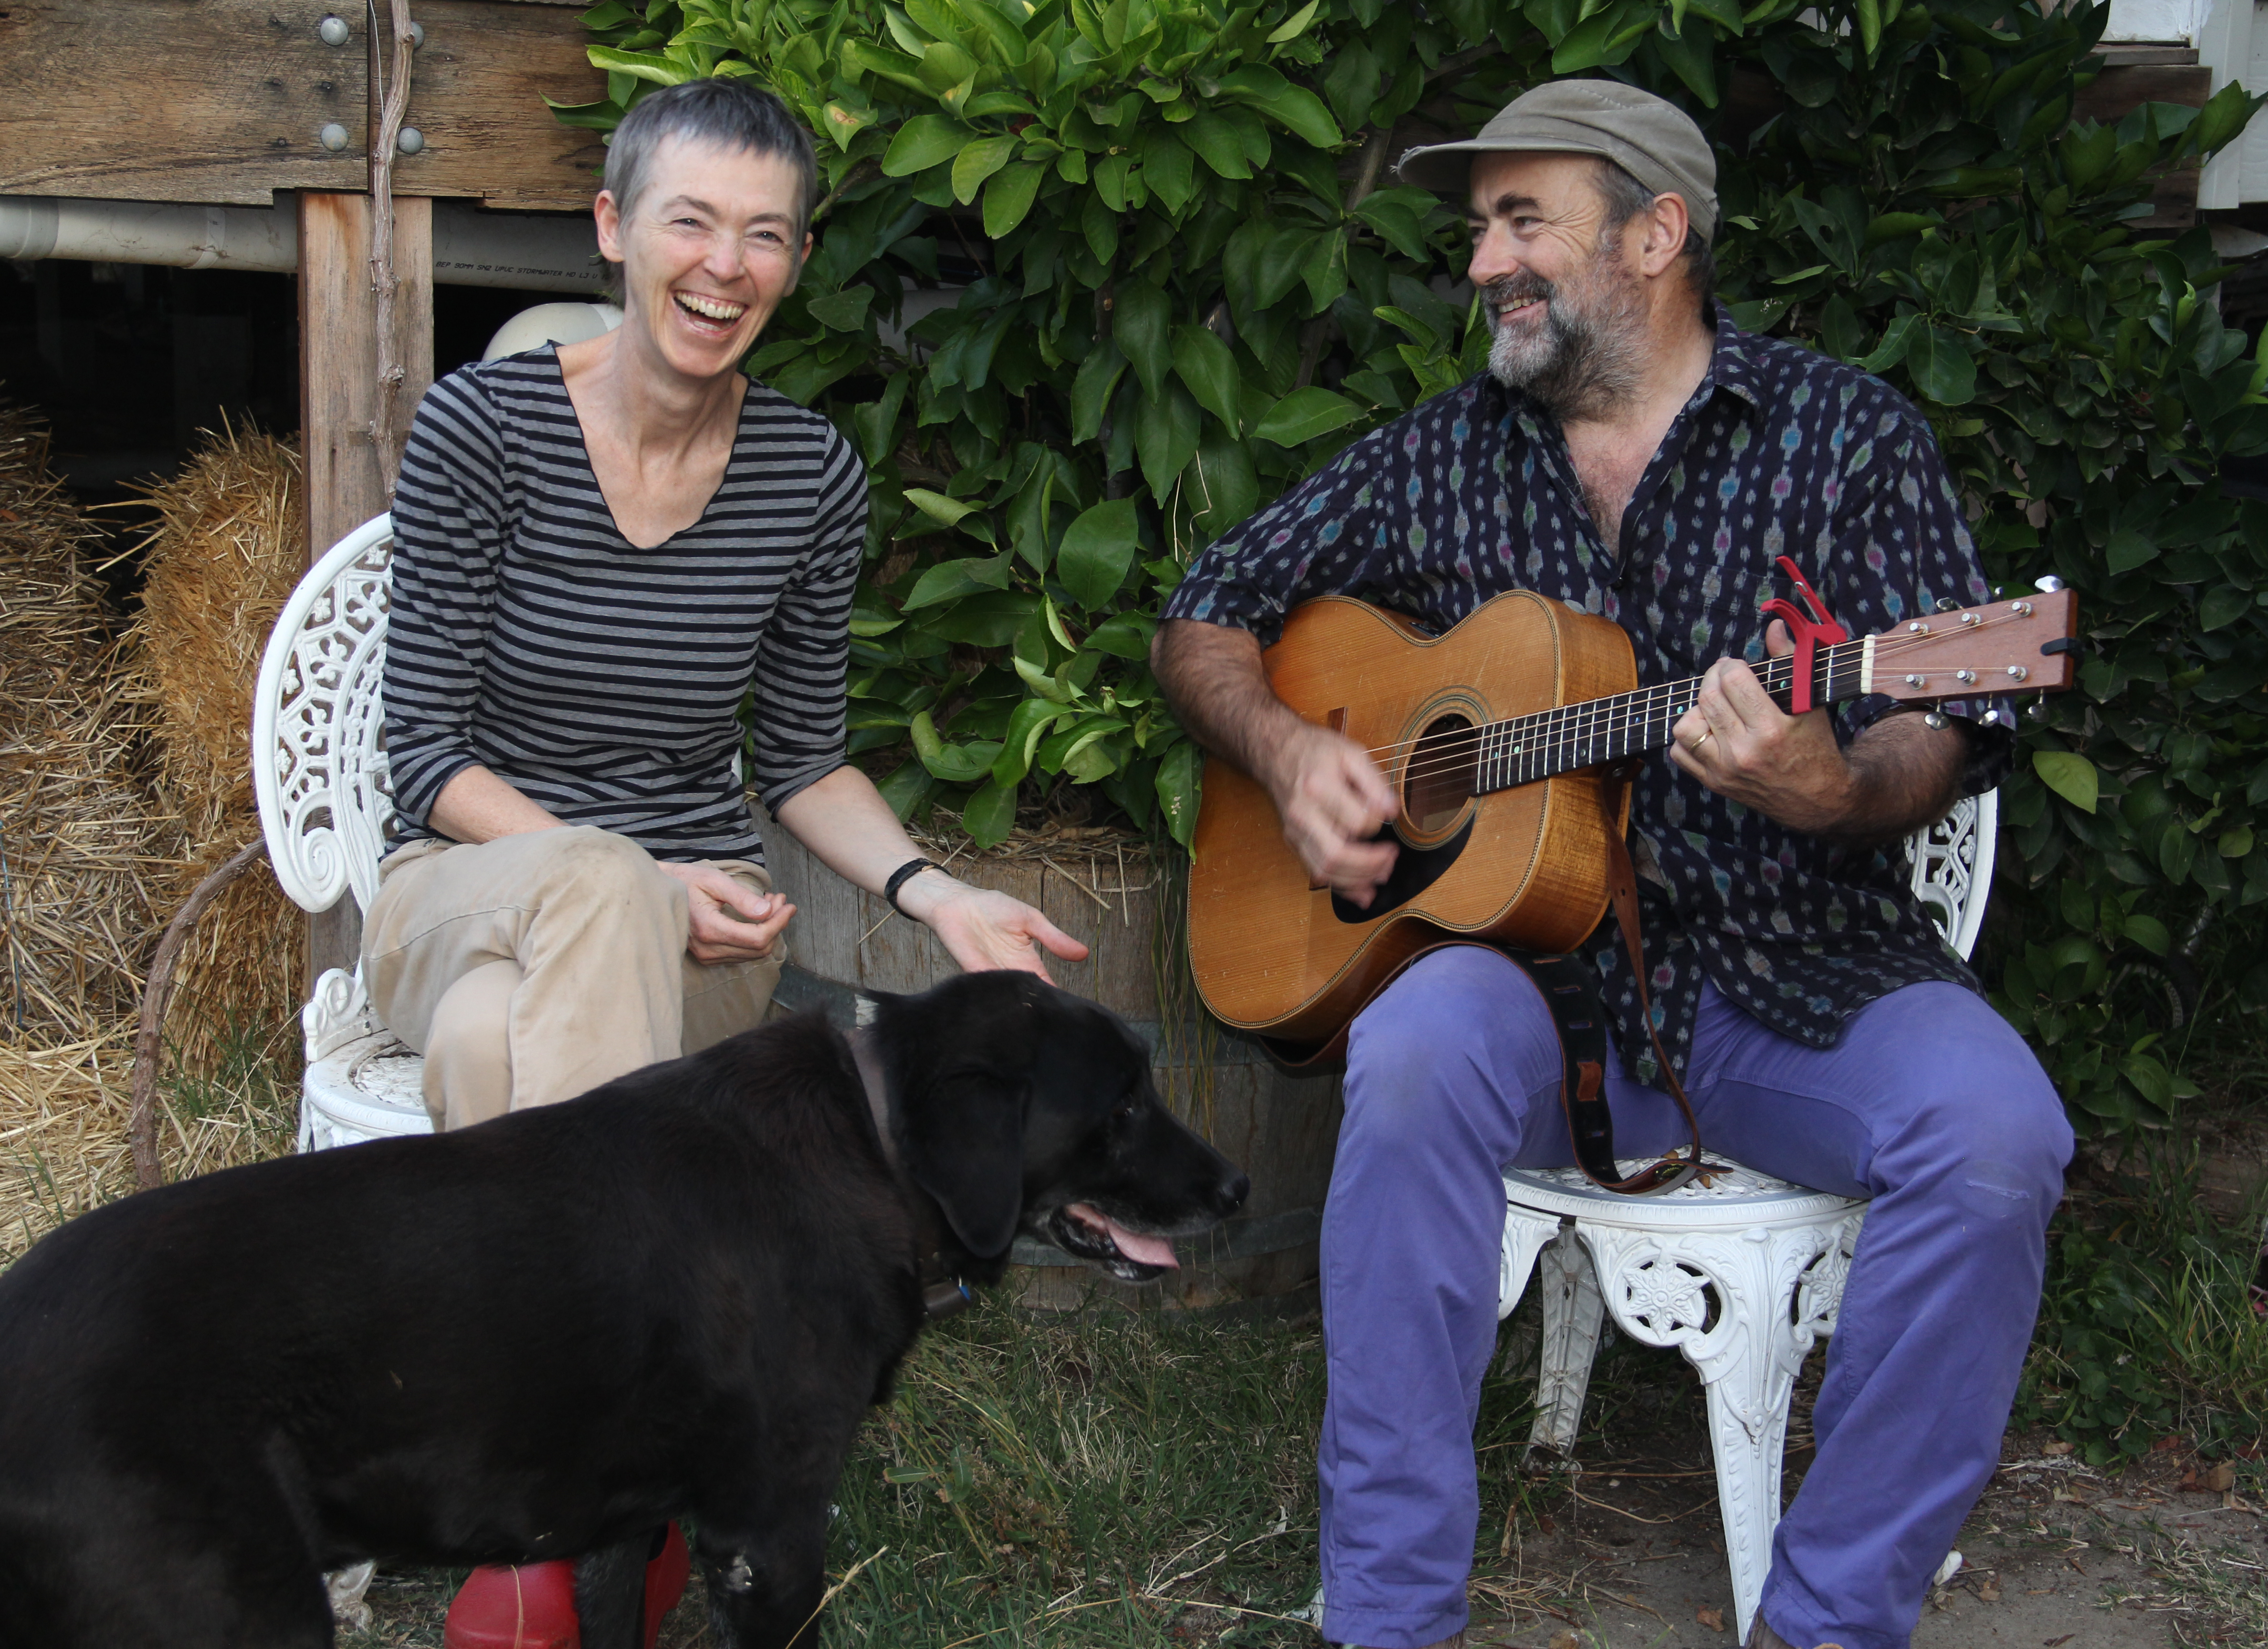 Jane laughing Caspo & James with guitar